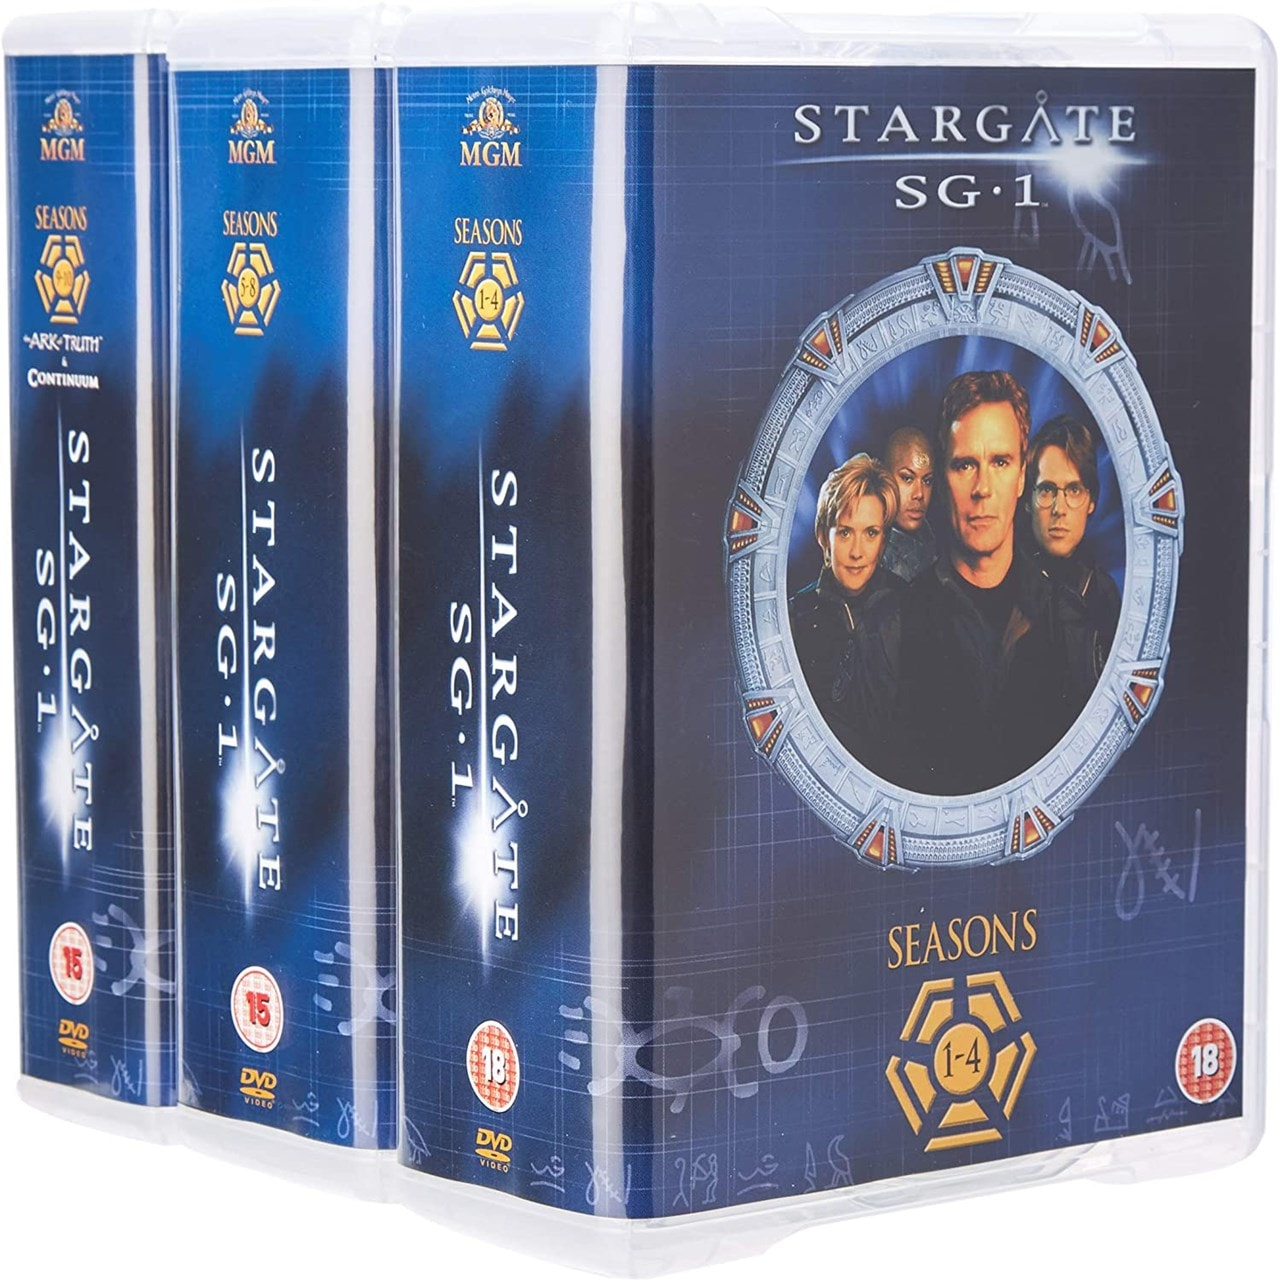 Stargate SG1: The Complete Series - 2